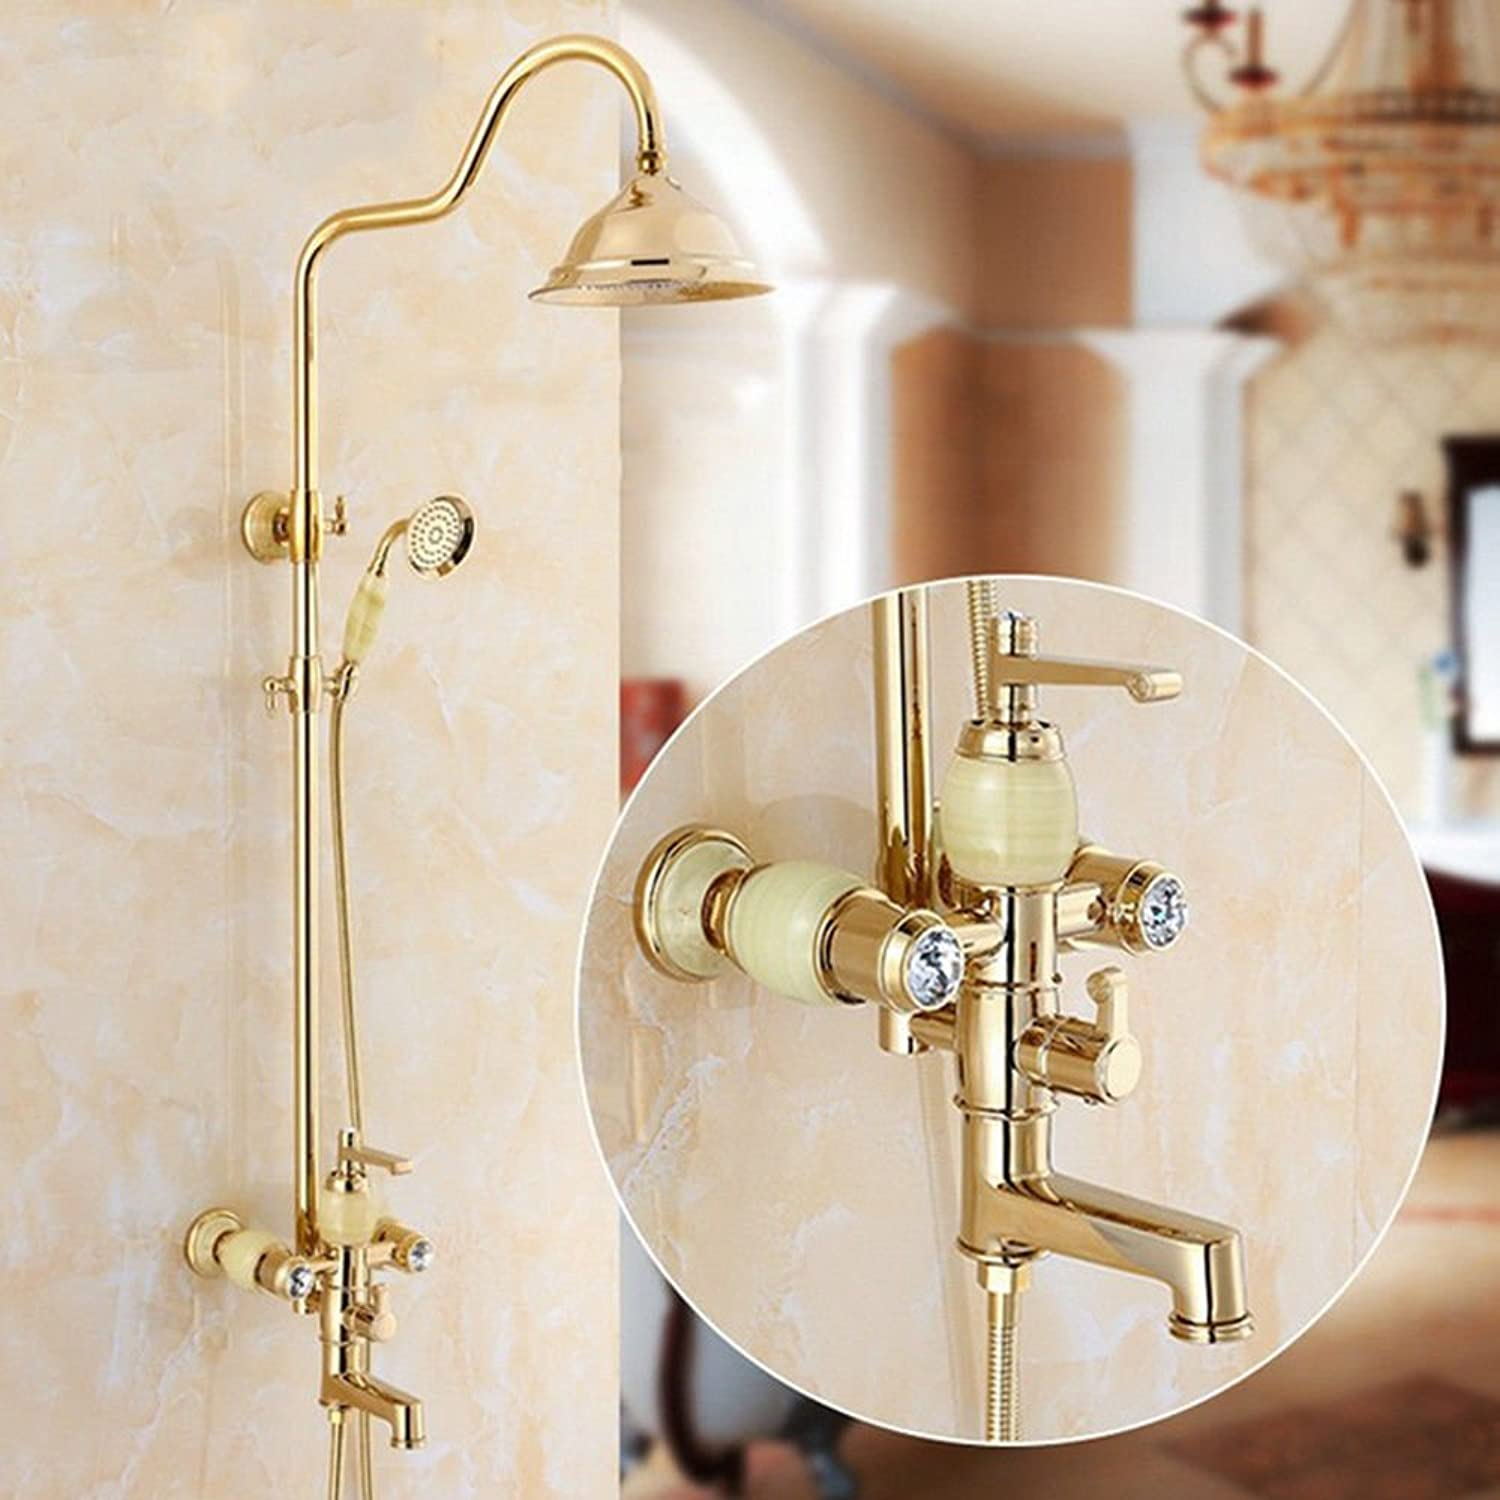 ETERNAL QUALITY Bathroom Sink Basin Tap Brass Mixer Tap Washroom Mixer Faucet All bathrooms are a variety of copper single hole mixing of hot and cold water to pull-down